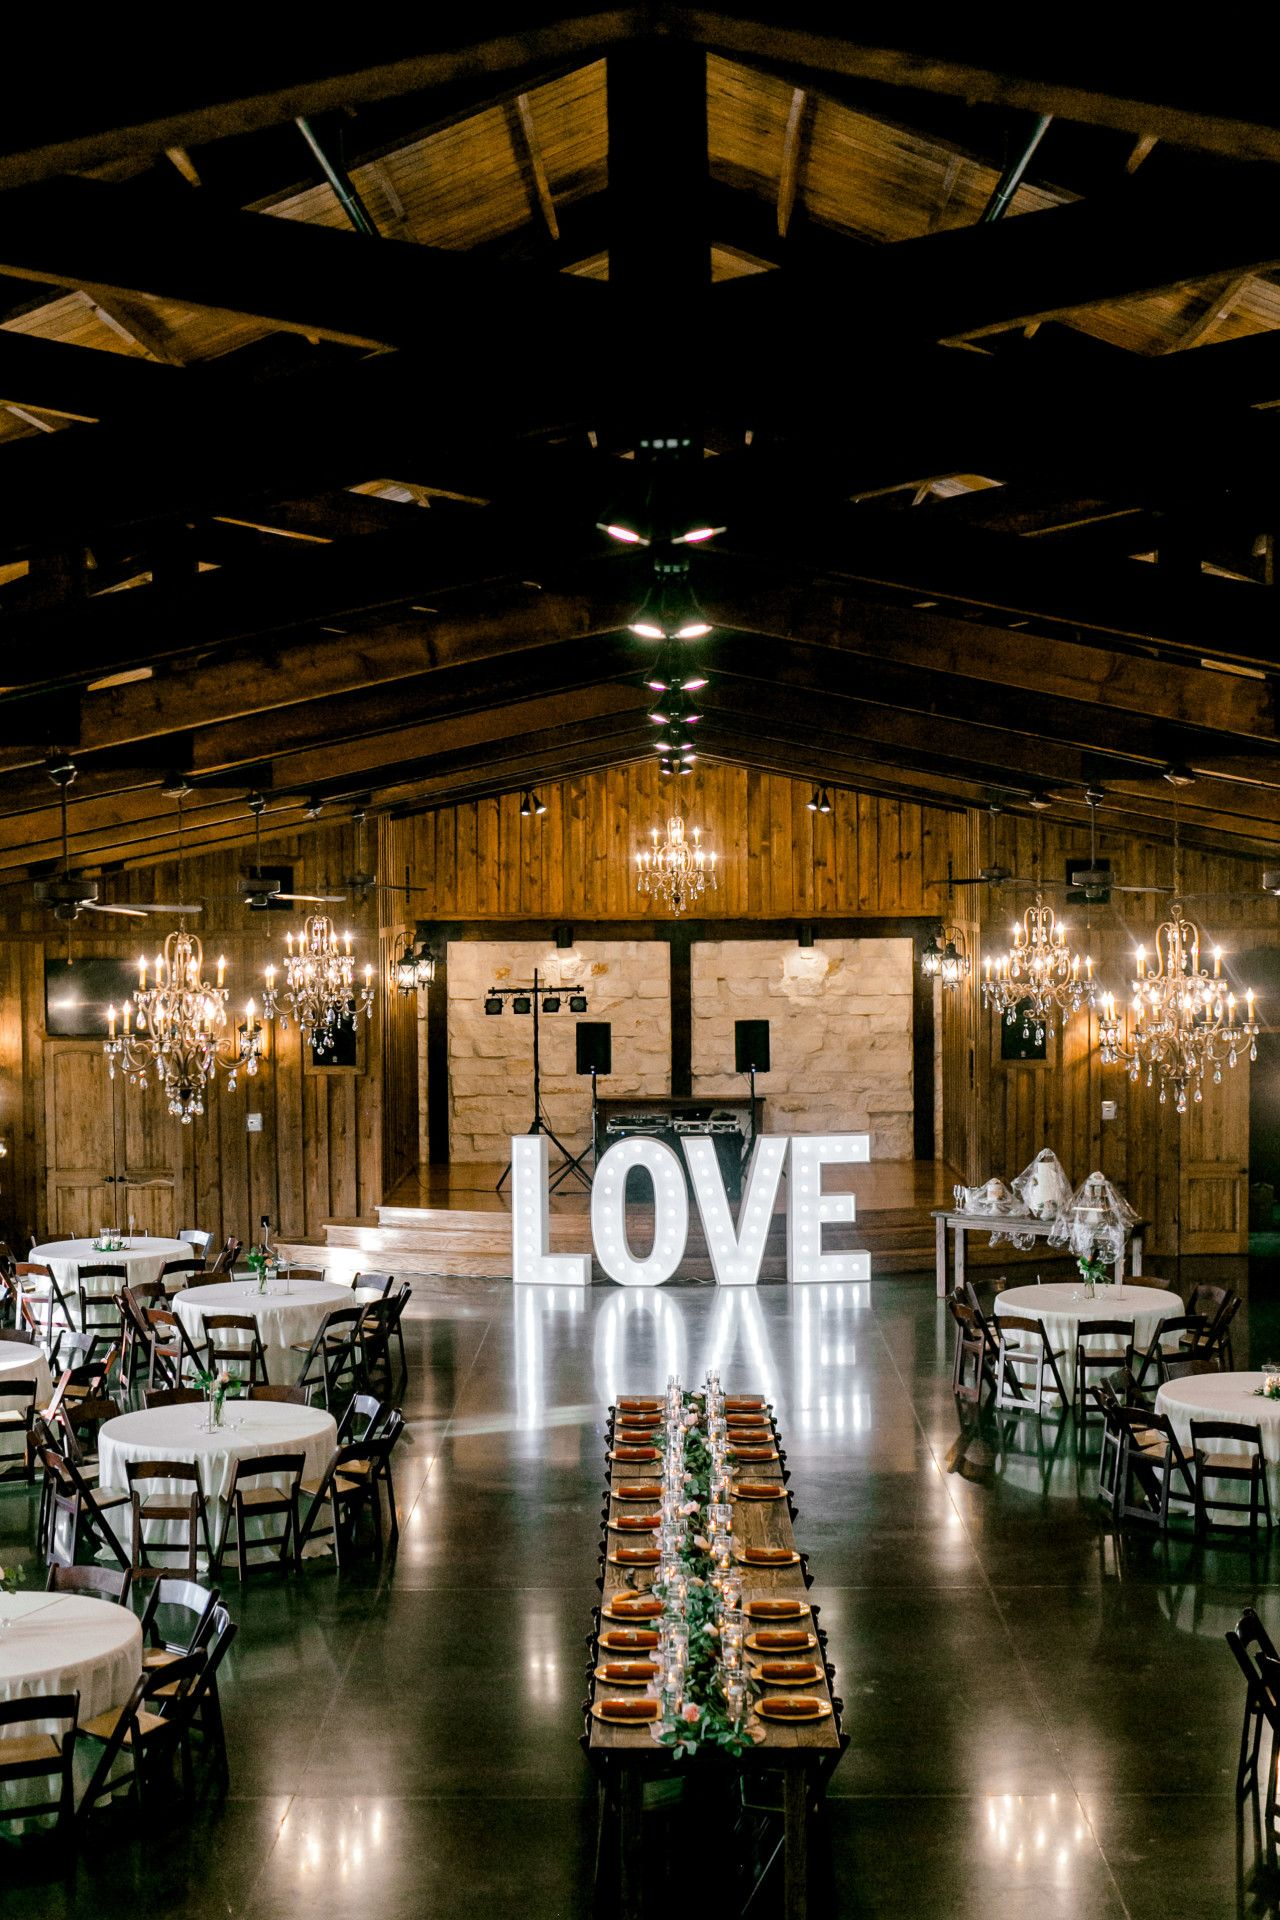 Norman Wedding Venue Springs Venue Oklahoma Wedding Venues Wedding Venues Texas City Wedding Decor